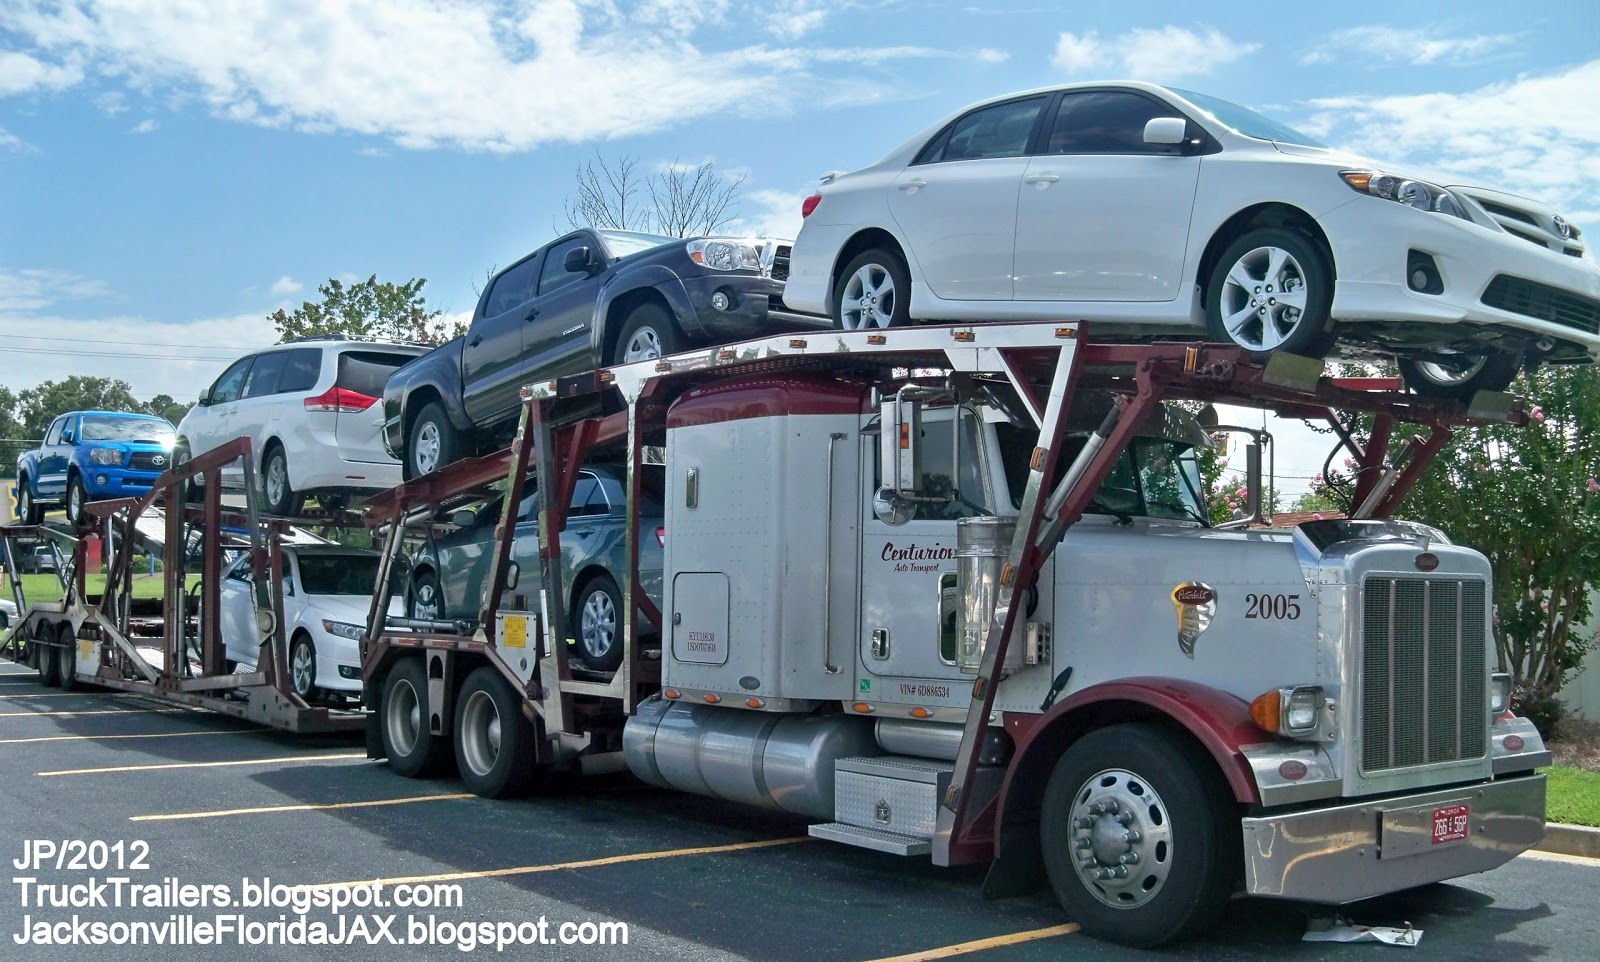 Auto Transport Rates >> Get Your Holiday Cheer With Low Auto Transport Rates A